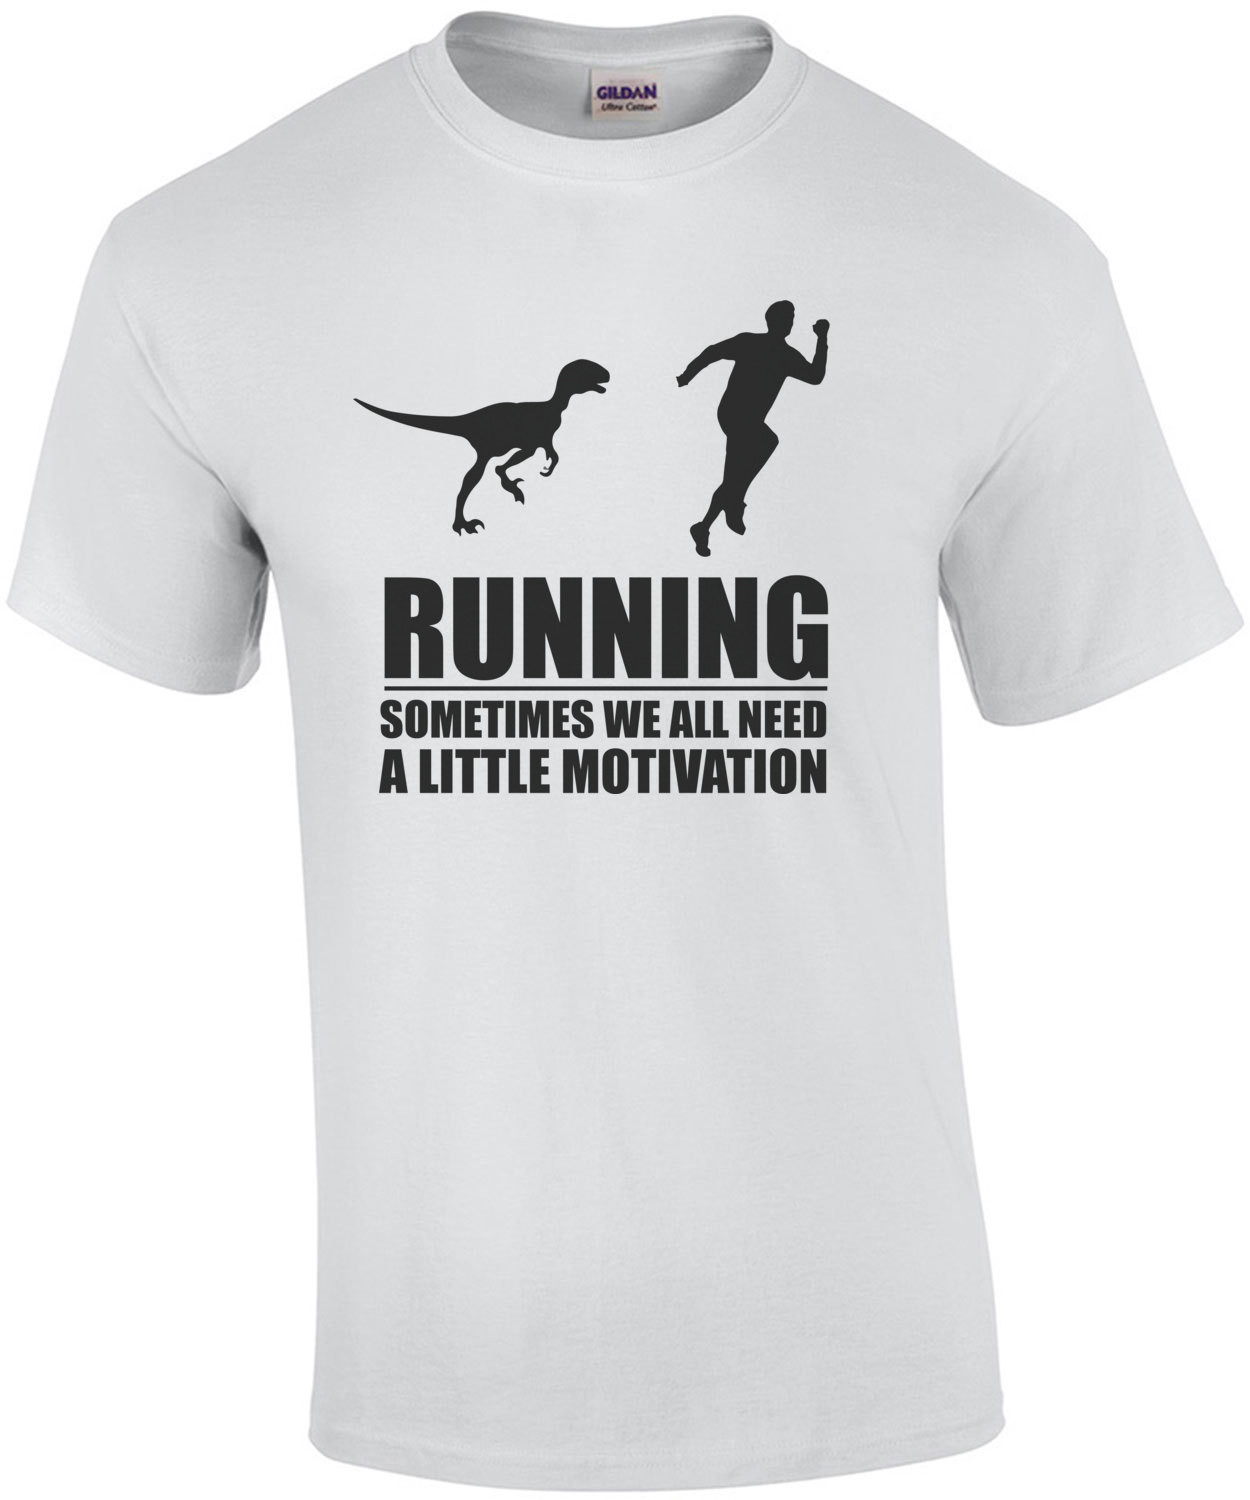 Running - Sometimes we all need a little motivation - man running velociraptor funny t-shirt